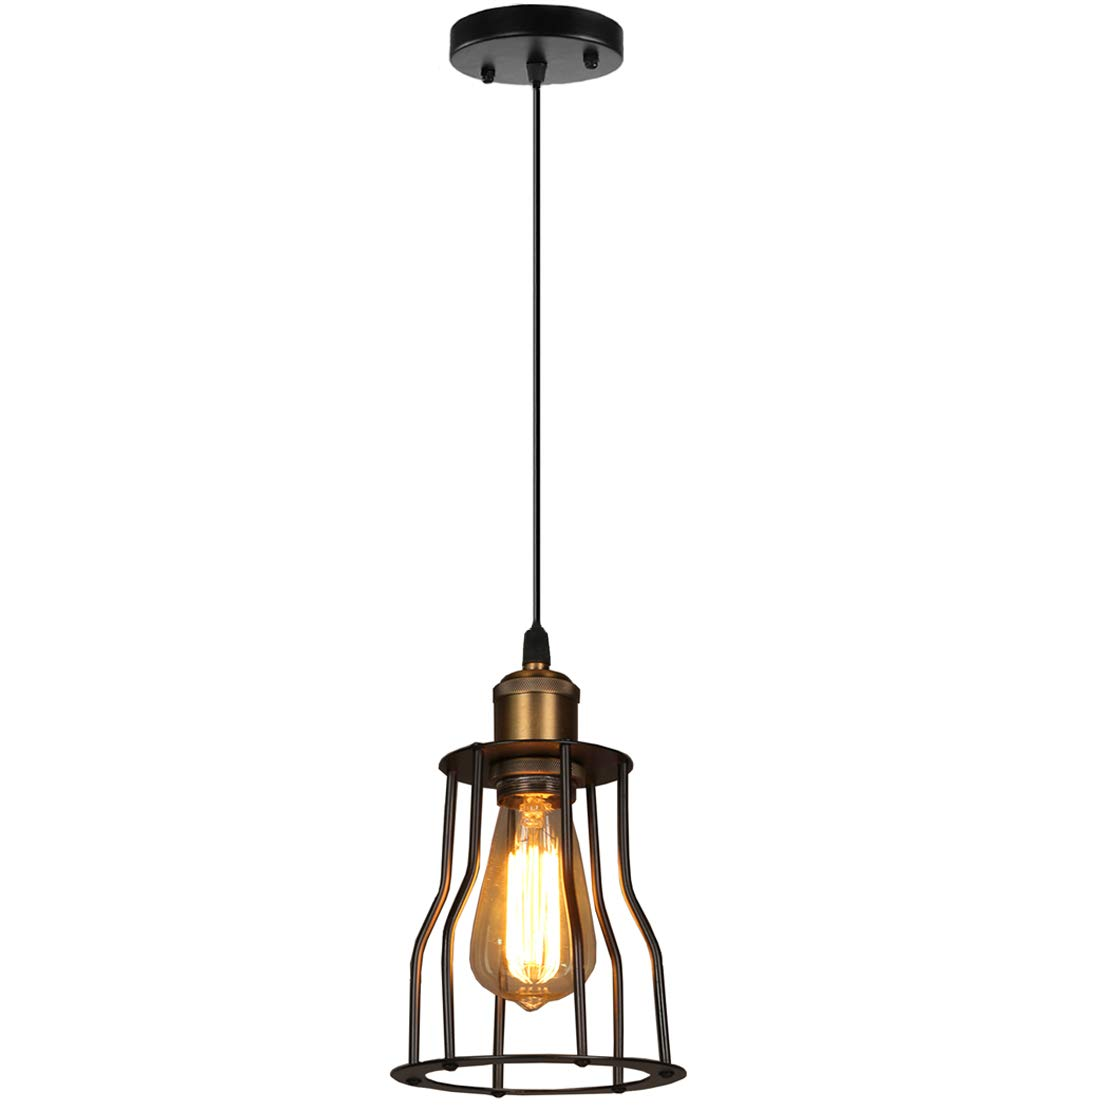 b378857e891 YOXANG Vintage Pendant Lighting Ceiling Creative Metal Light Fitting Retro  Industrial Edison Adjustable Hanging Lights for Dining Room Mini Cage Shade  Loft ...